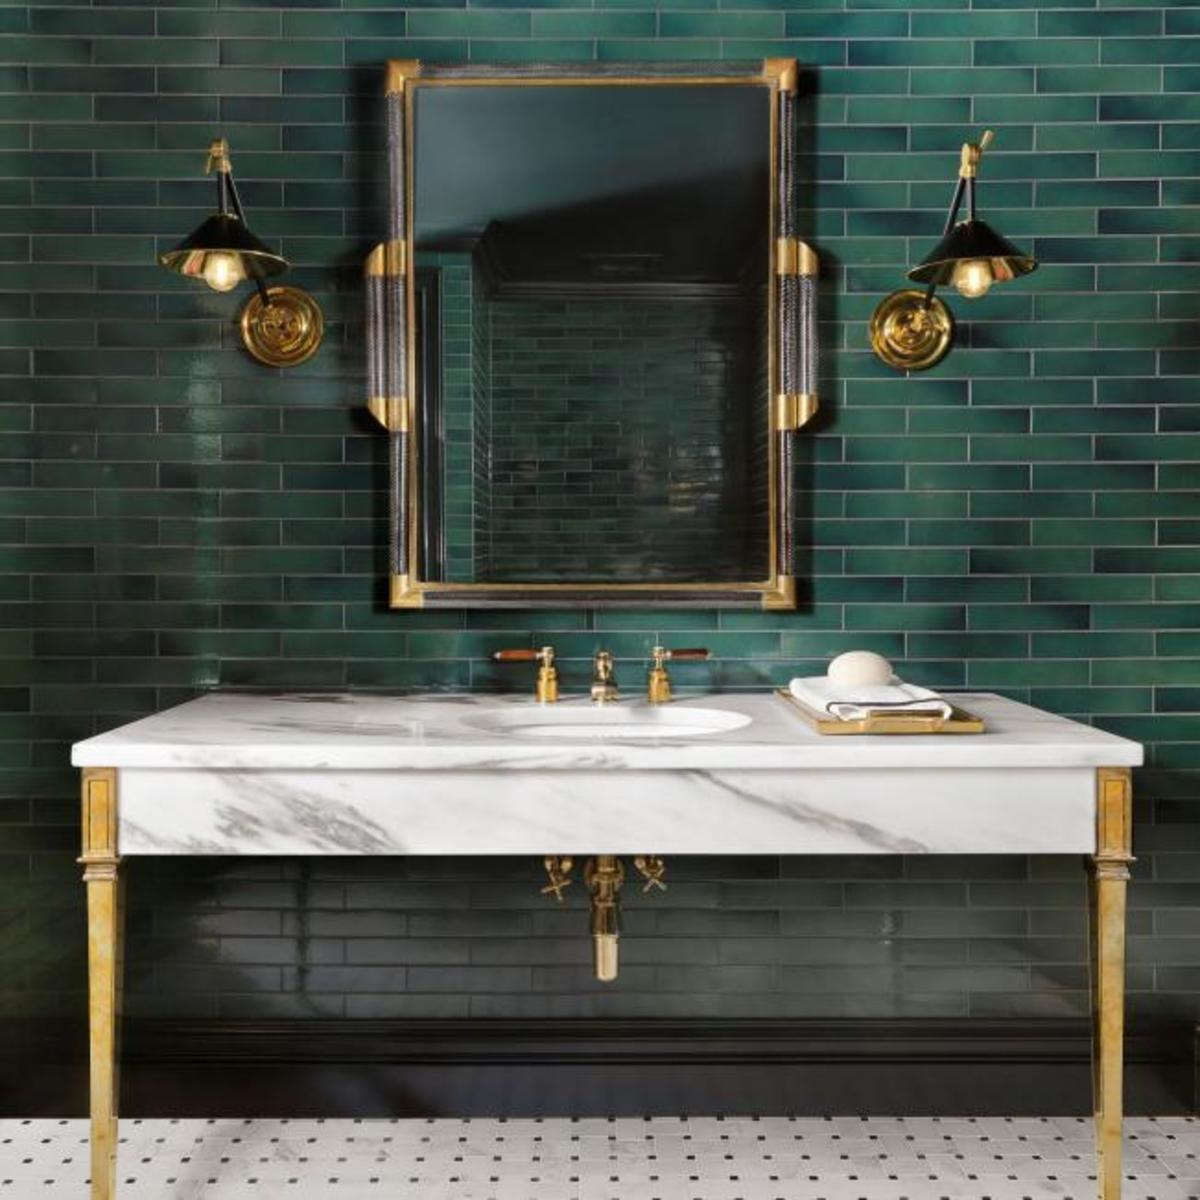 I'm loving this dark green and gold look for a Chinese Zodiac Rat's bathroom. The colors are magical and remind me of a hidden forest owned by fairies. This is a bathroom where you can feel like you can relax.